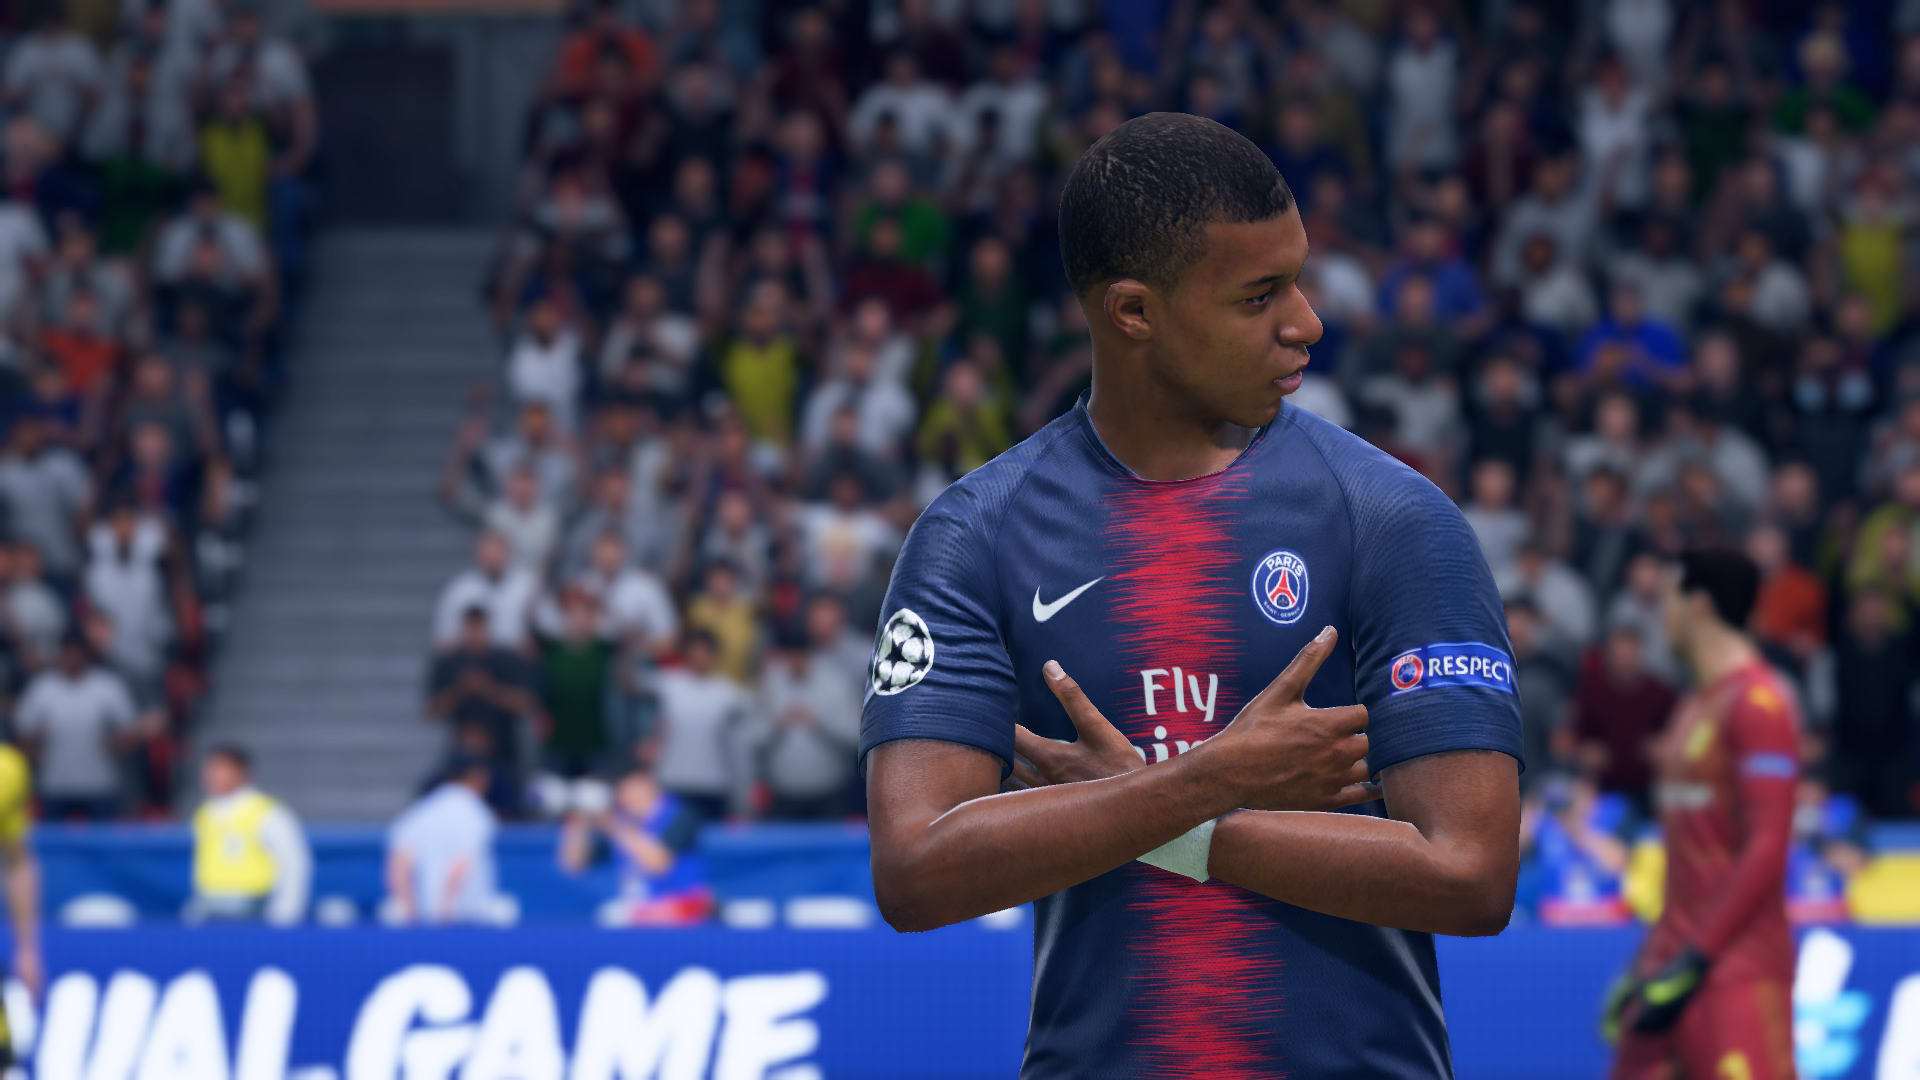 Fifa 20 Best Strikers Who Has Topped The Ratings